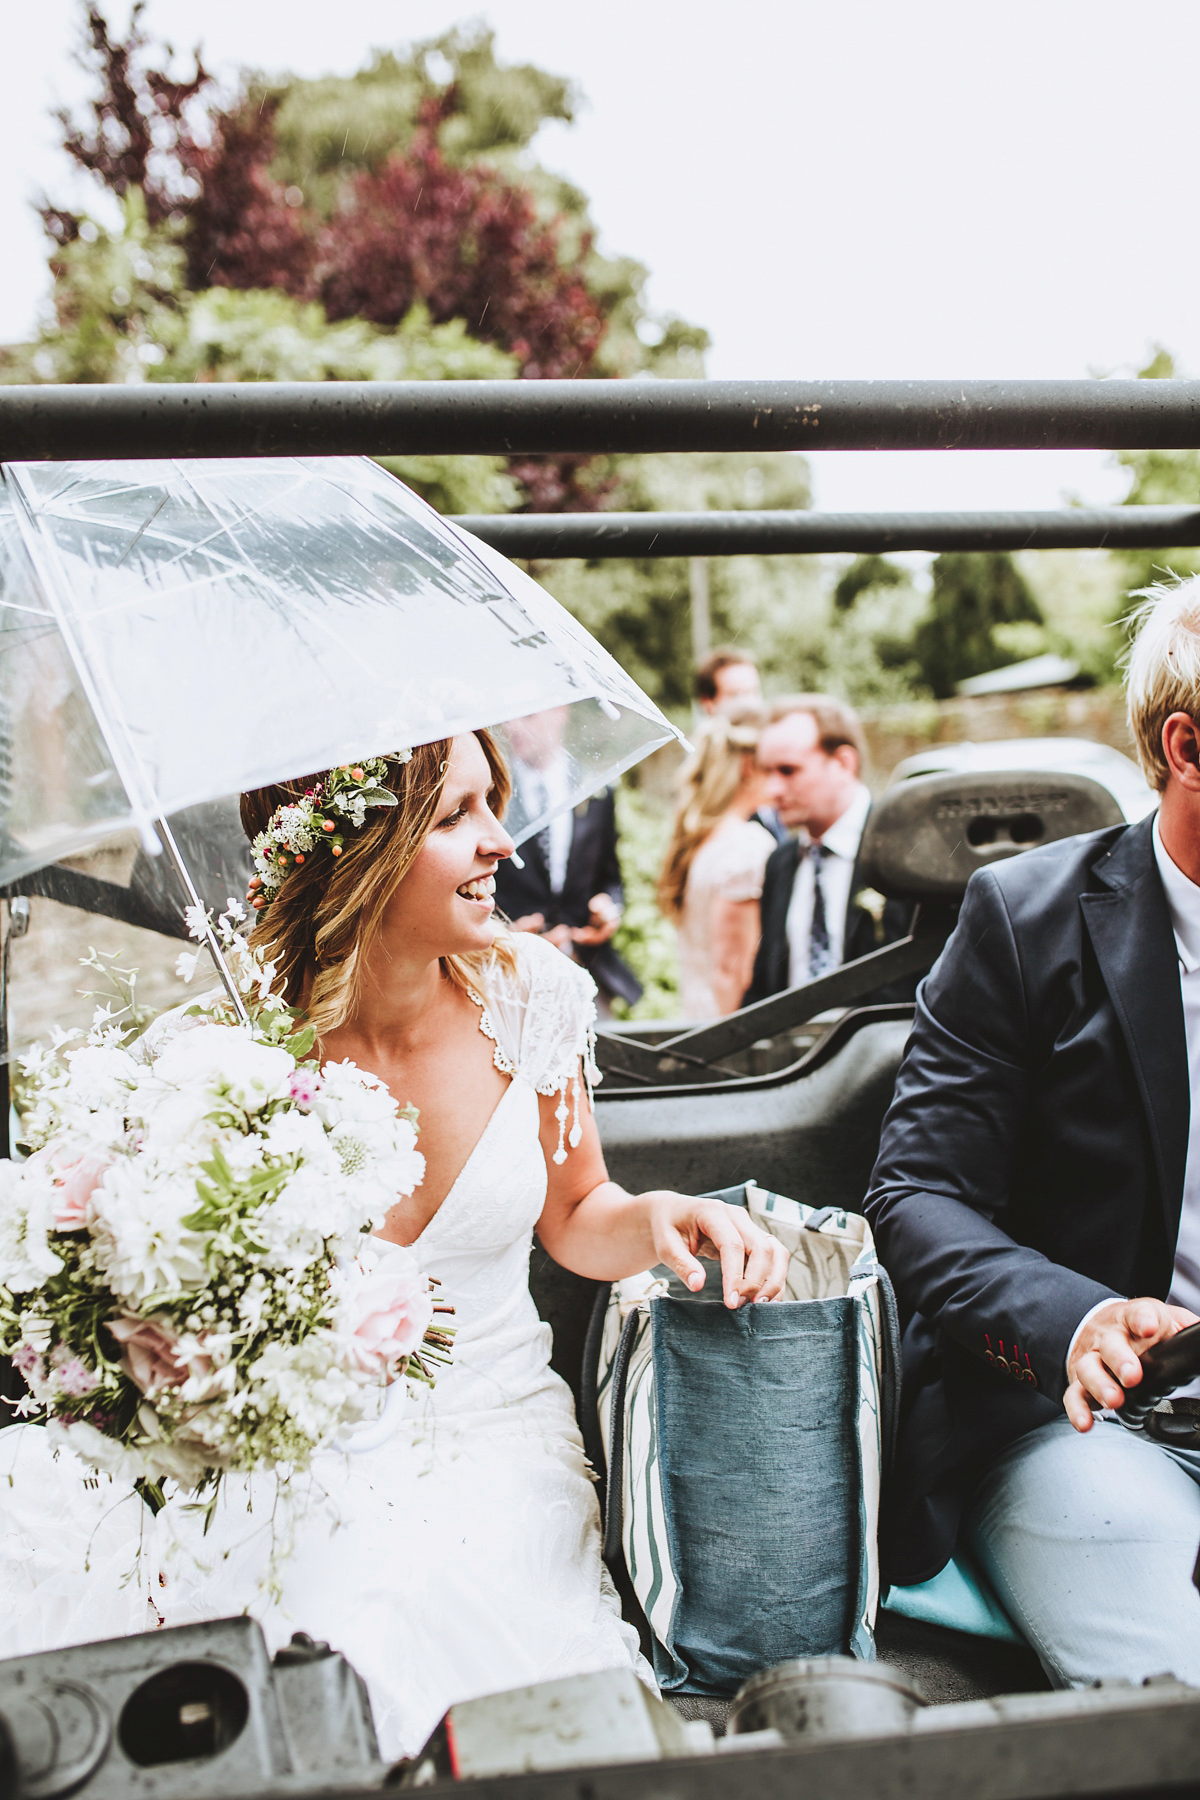 A Claire Pettibone Gown for a Charming and Fun-filled Rural Village Wedding (Weddings )